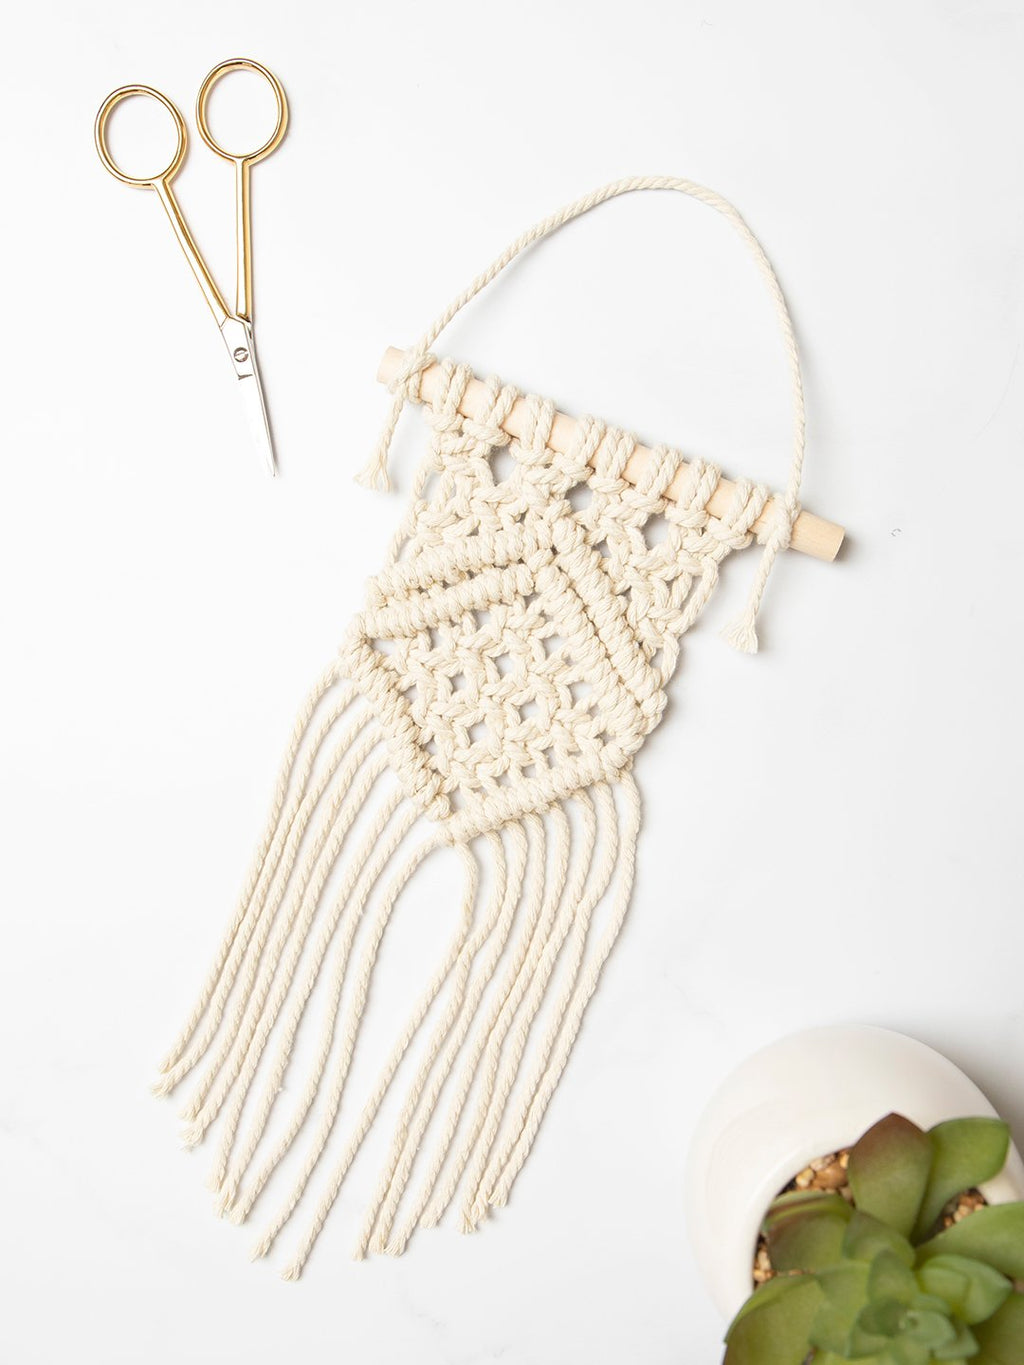 Mini Macrame Wall Hanging Craft Kit